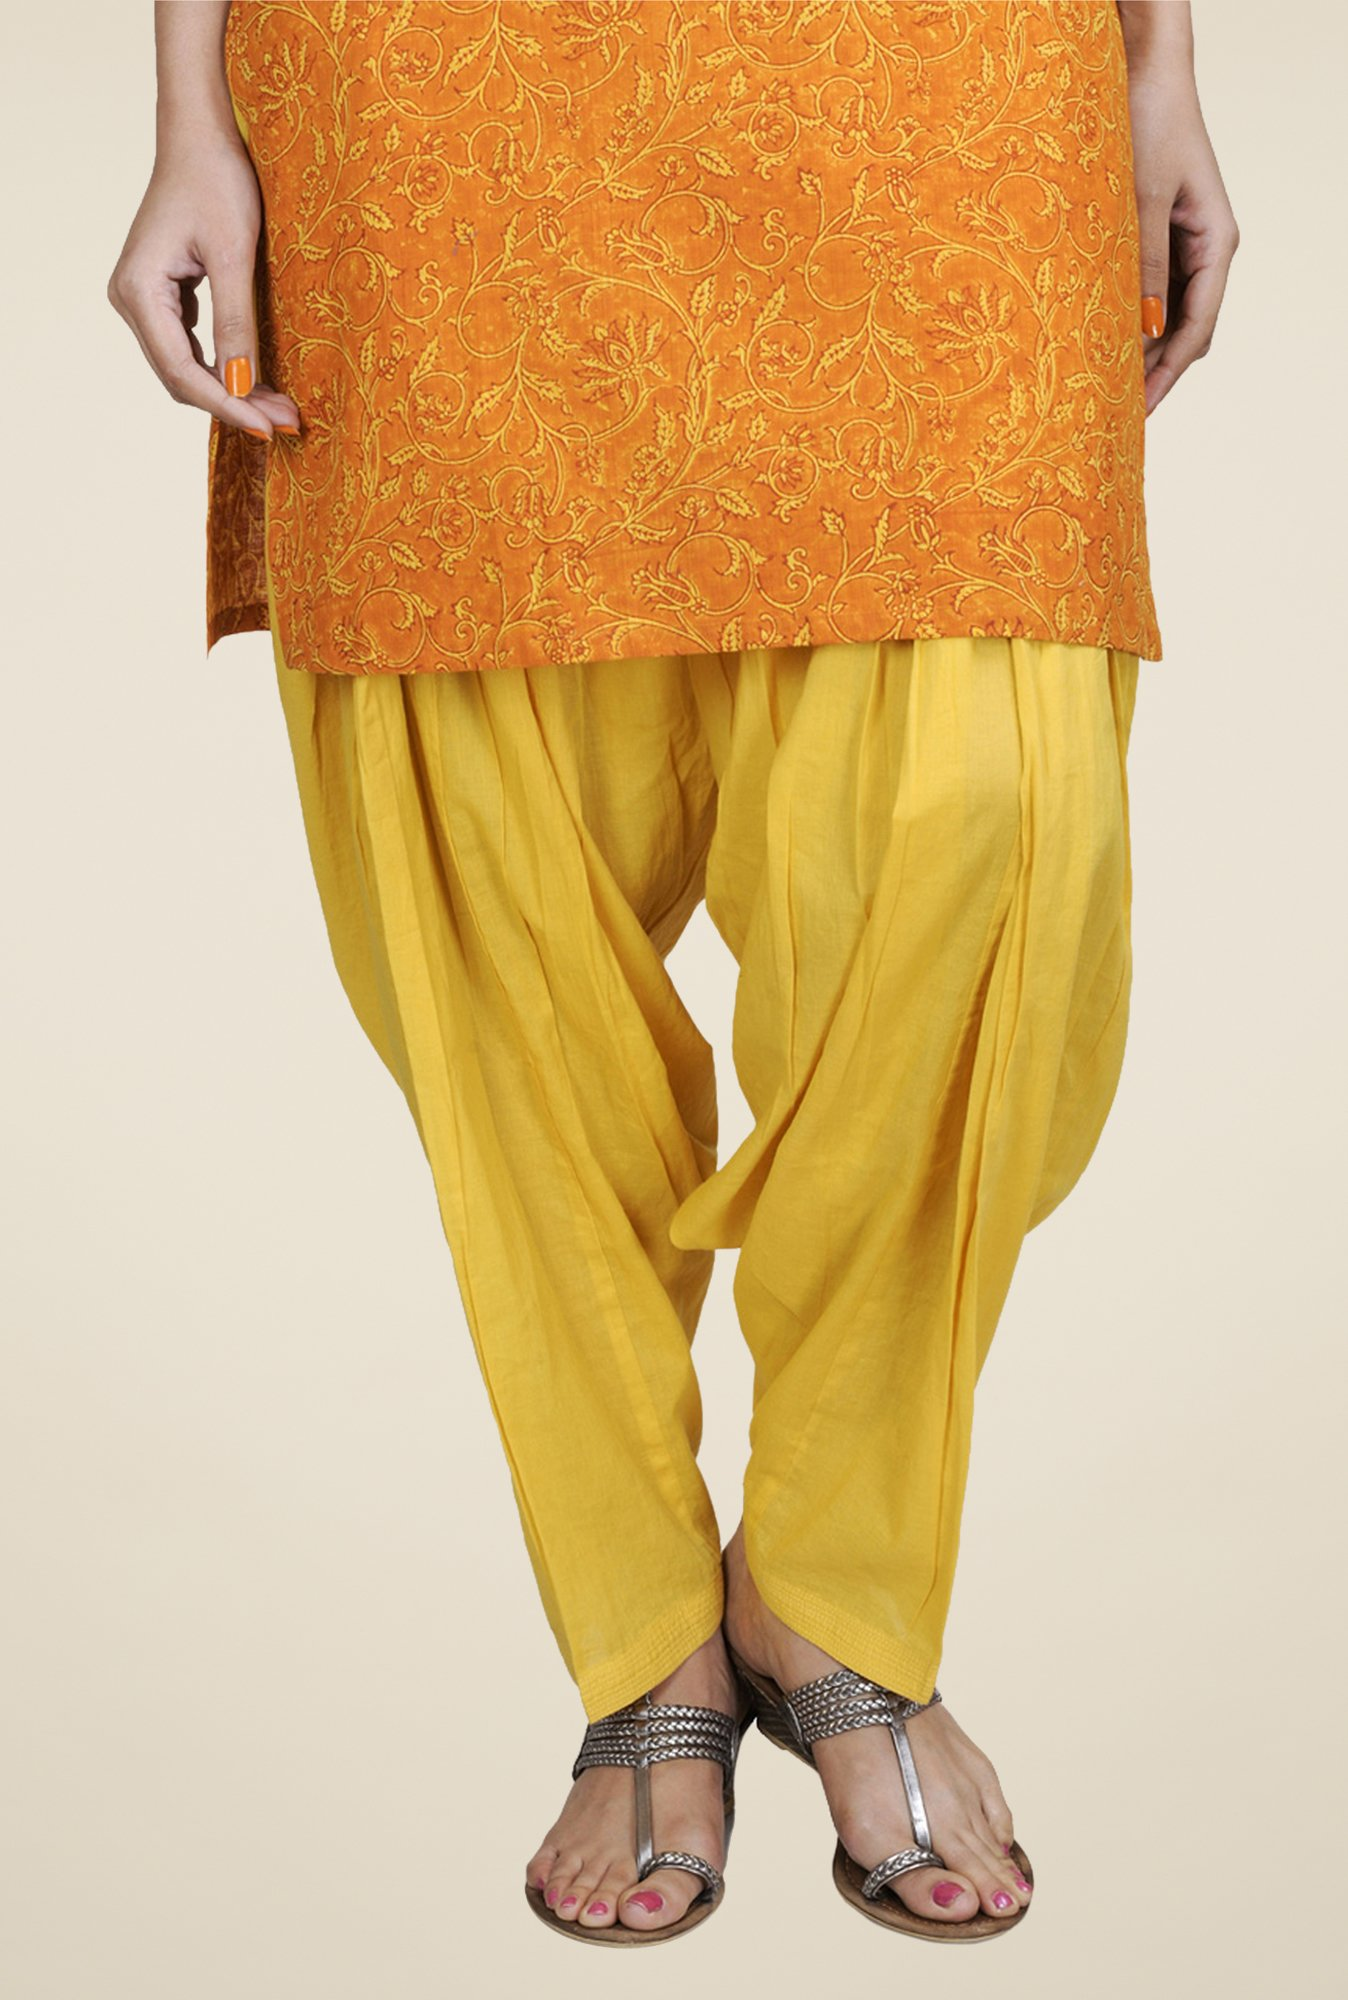 Fabindia Yellow Solid Patiala